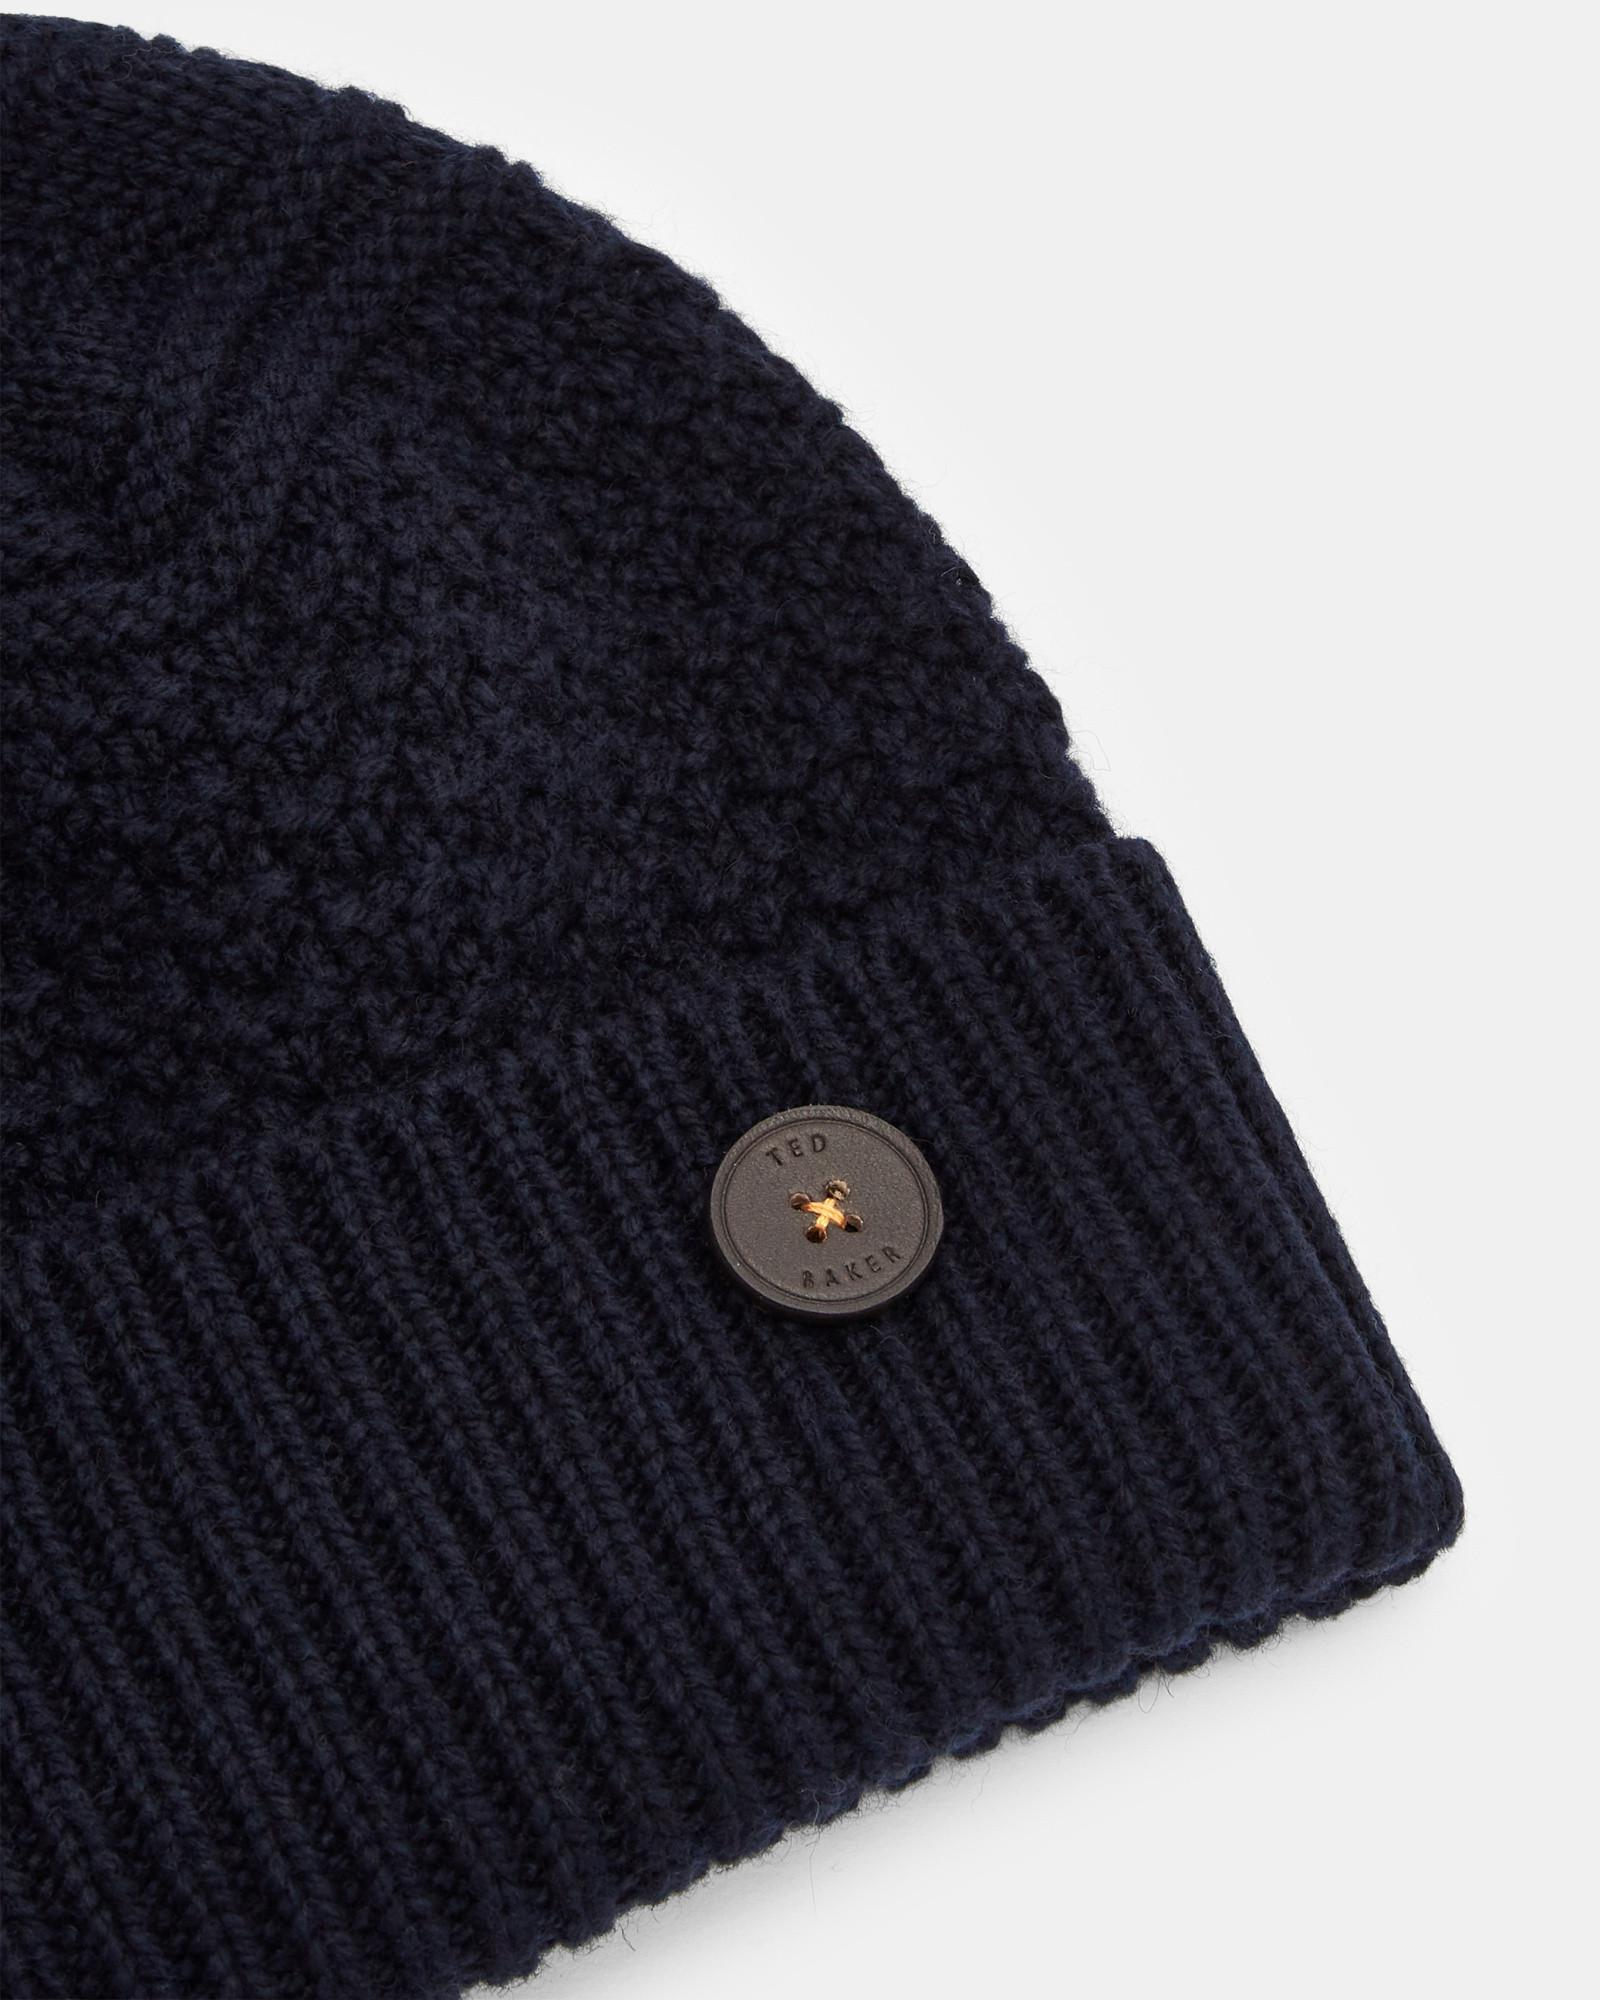 605fd05c7d3 Lyst - Ted Baker Multi Stitch Cashmere Hat in Blue for Men